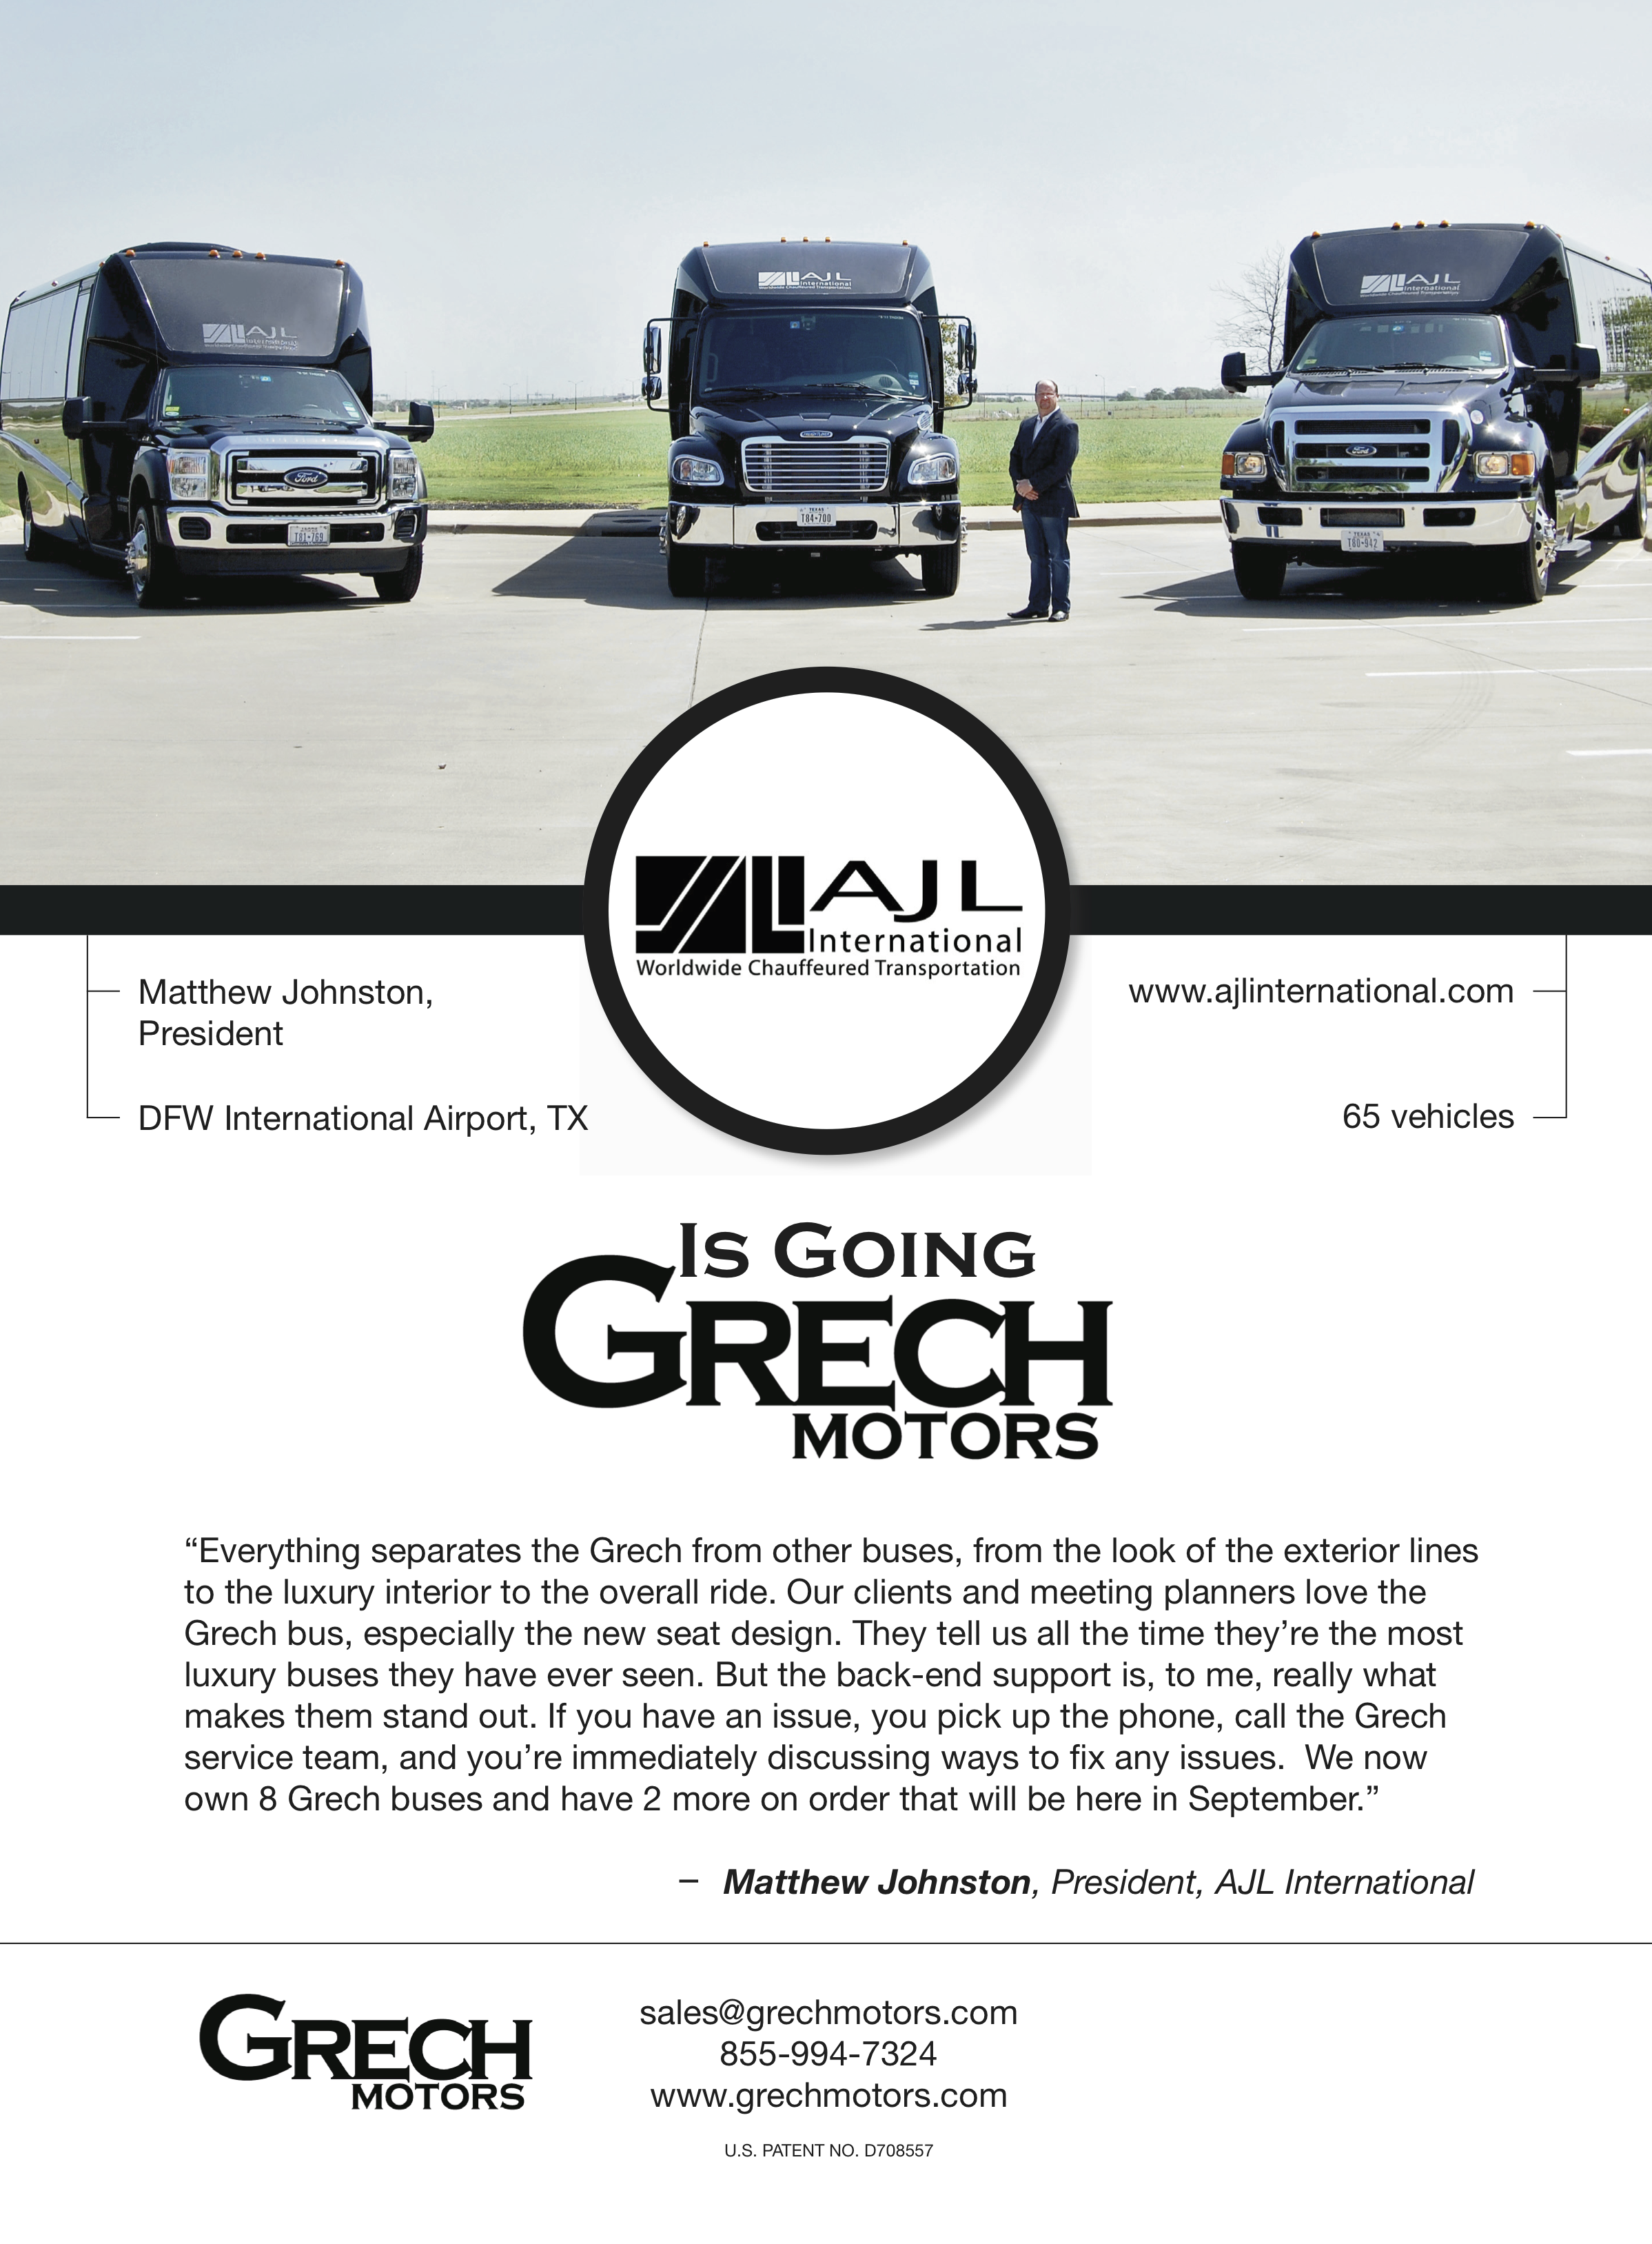 AJL-Going-Grech-LCT-2 copy.png